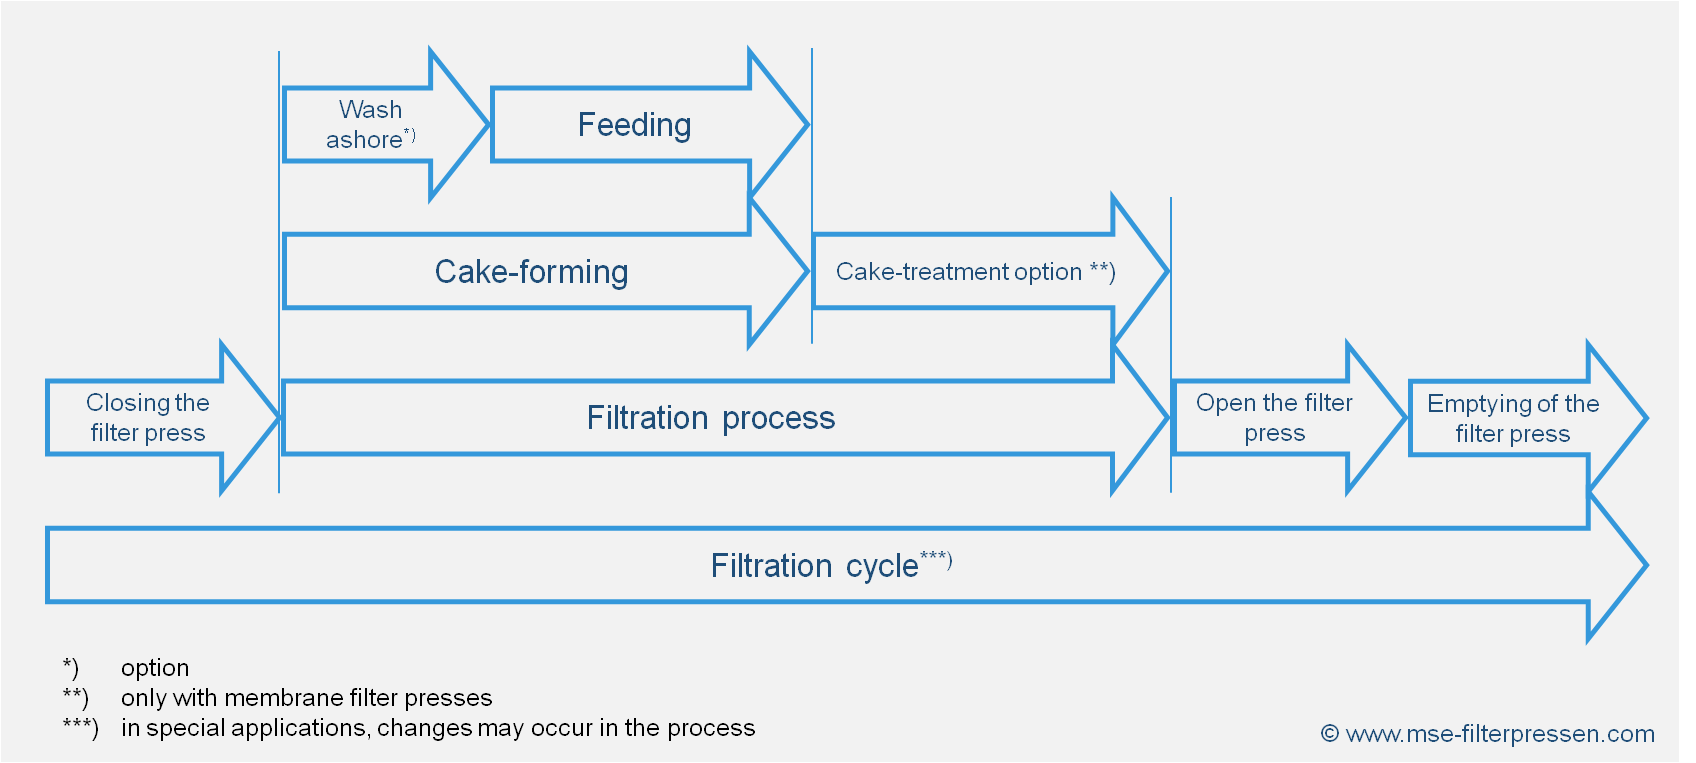 Filtration process of a chamber filter press